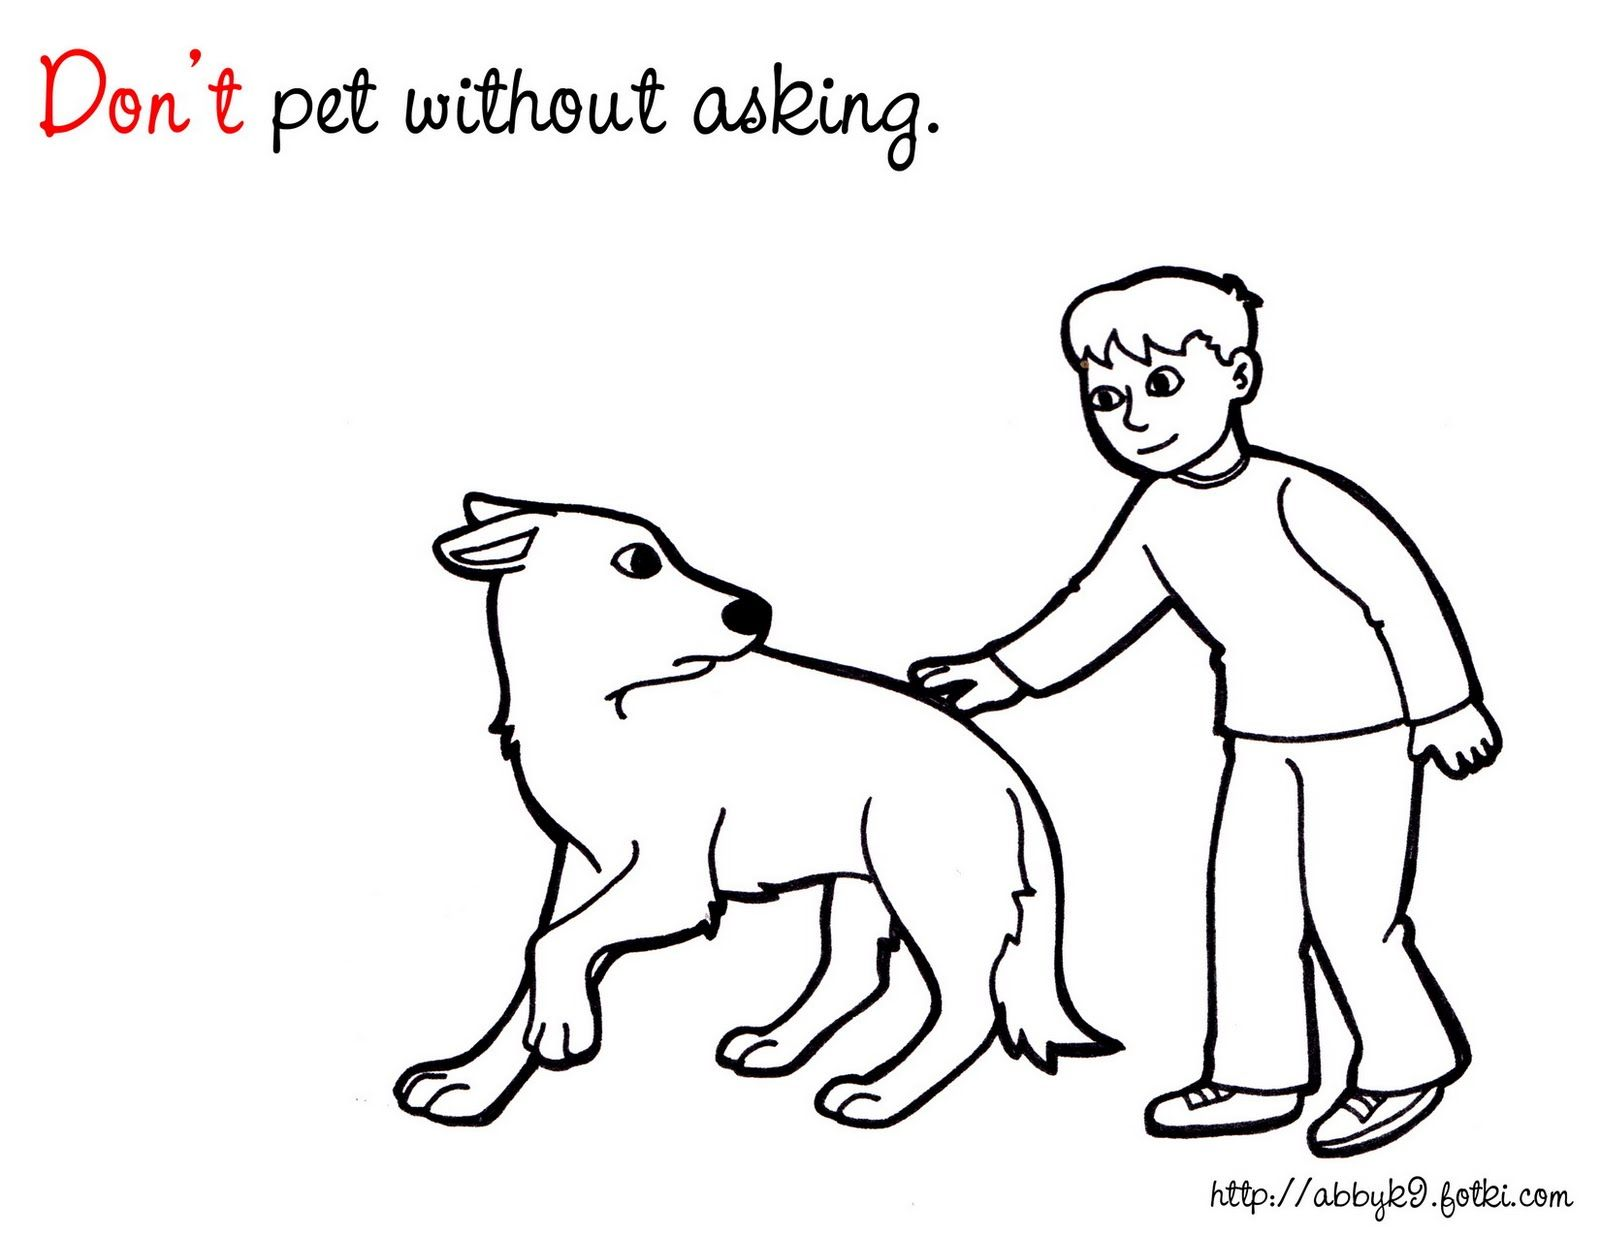 Dog Safety Coloring Pages Literature For Kids Dog Safety